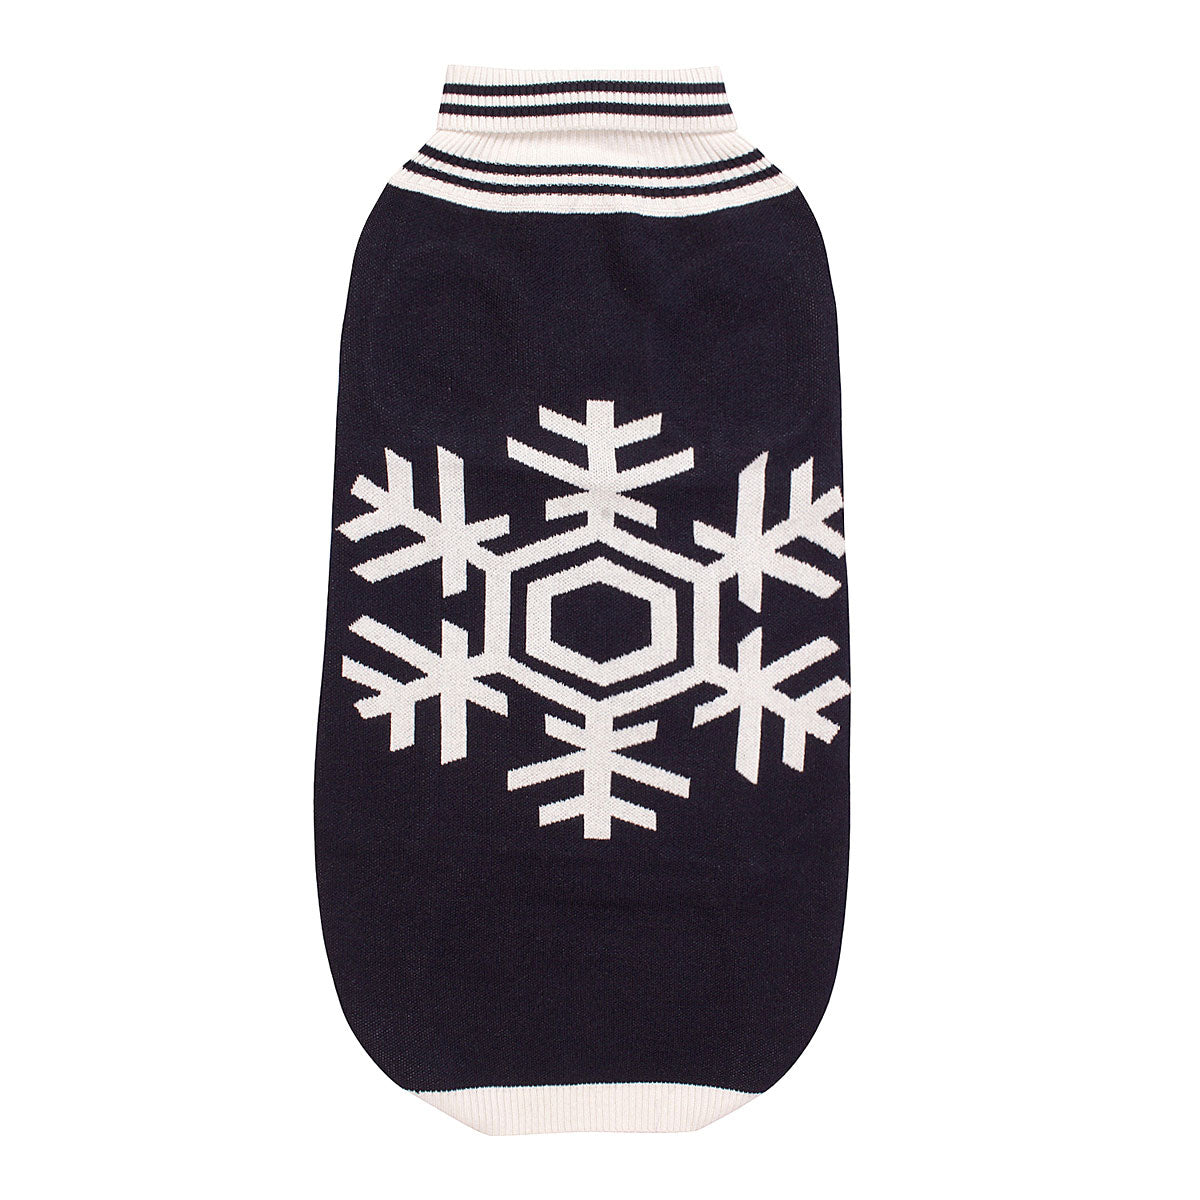 Halo Snowflake Dog Sweater_1597